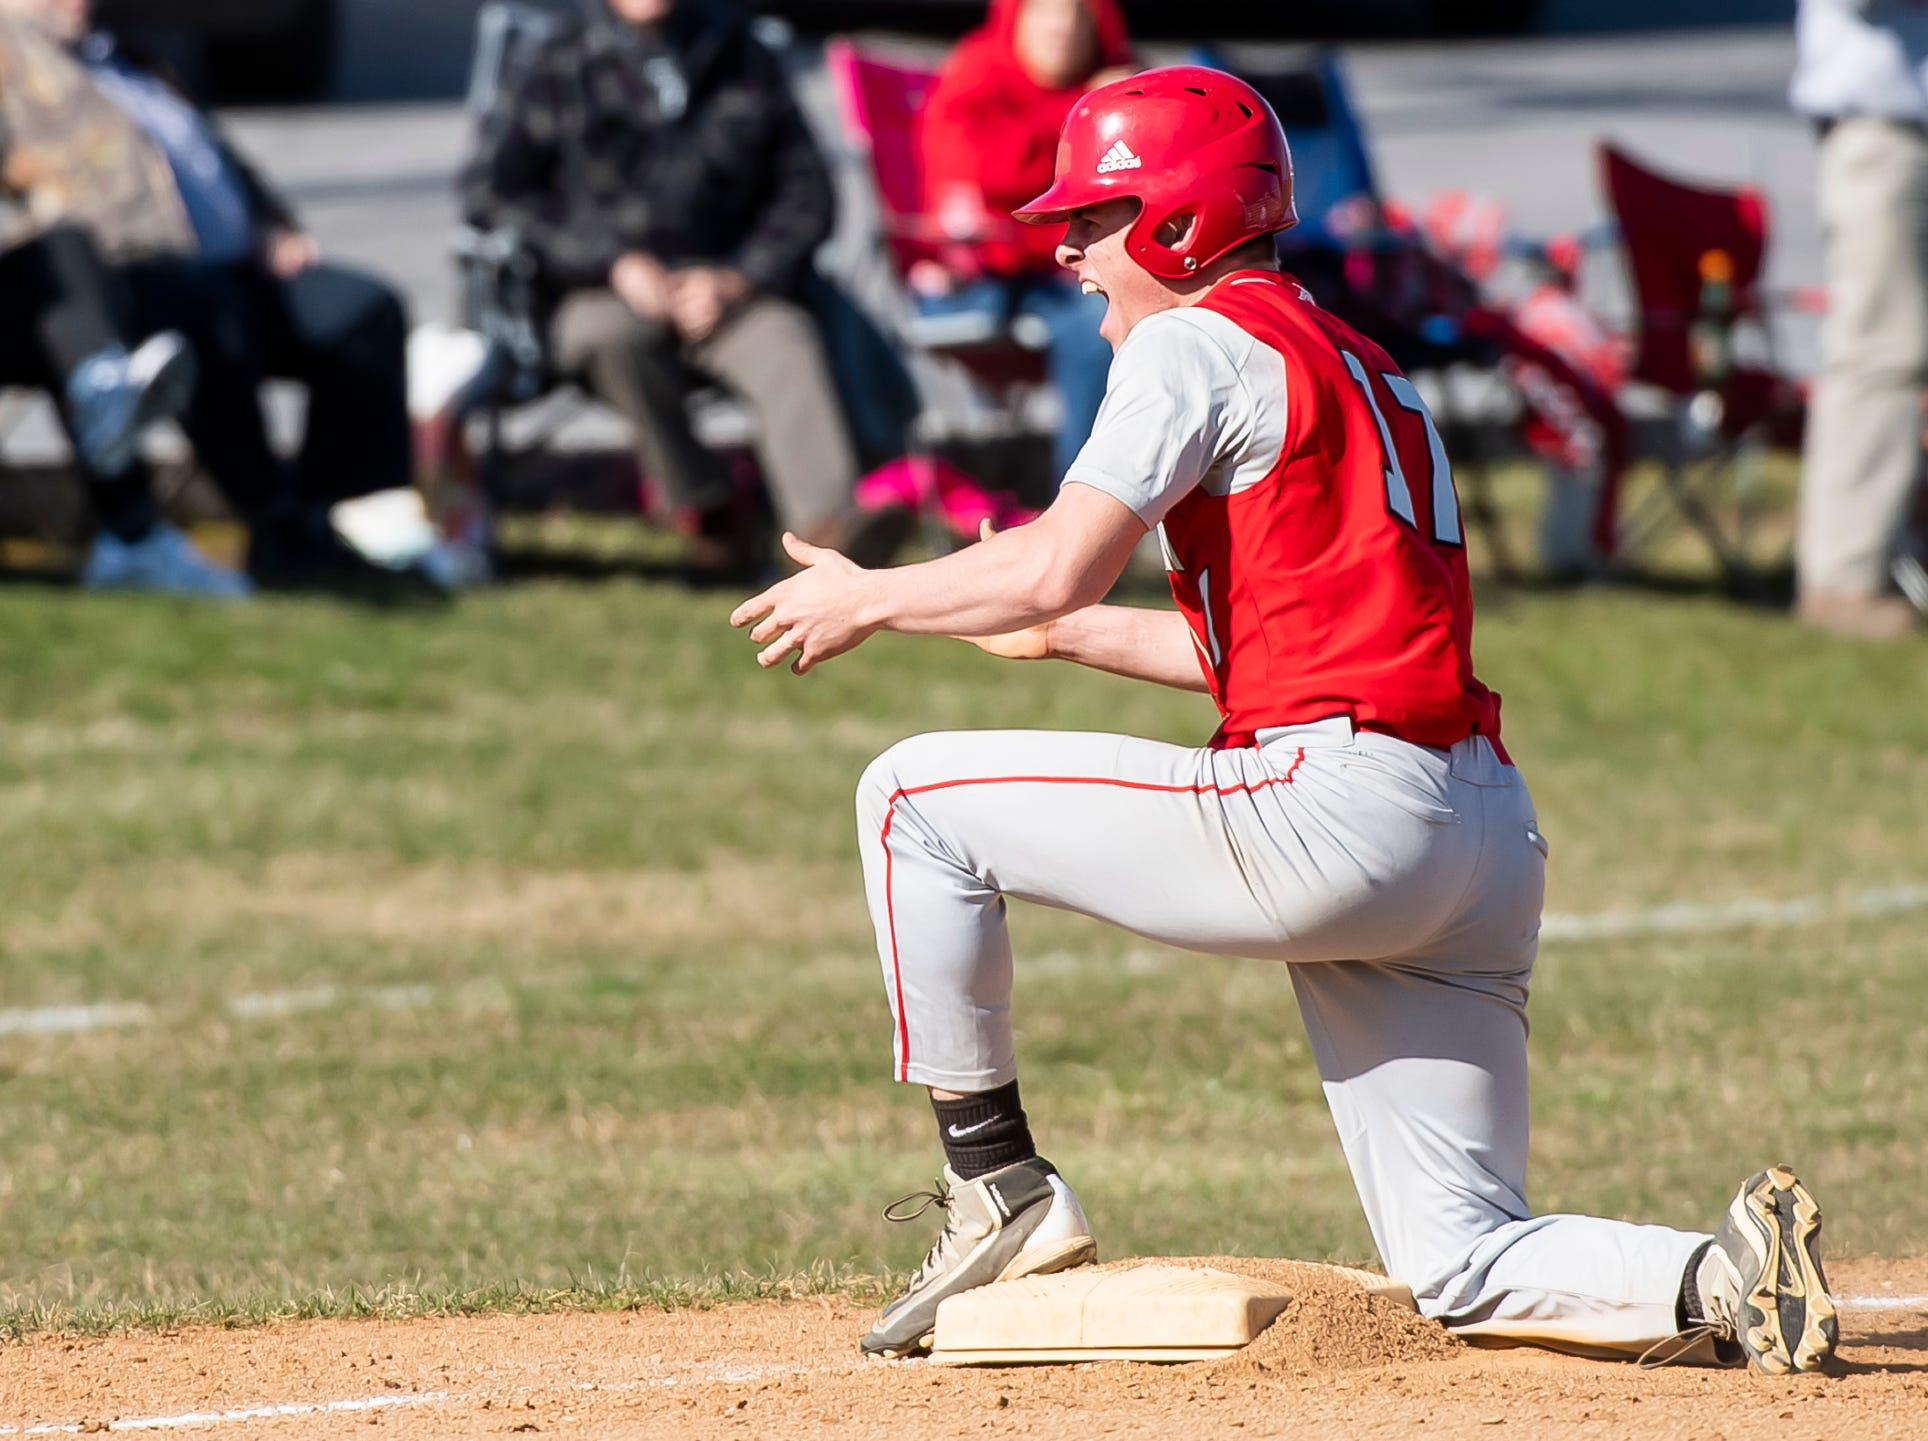 Bermudian Springs' Nate McCollum reacts after driving in two runs on a triple during a YAIAA baseball game against West York on Wednesday, April 3, 2019. The Eagles fell 14-11.